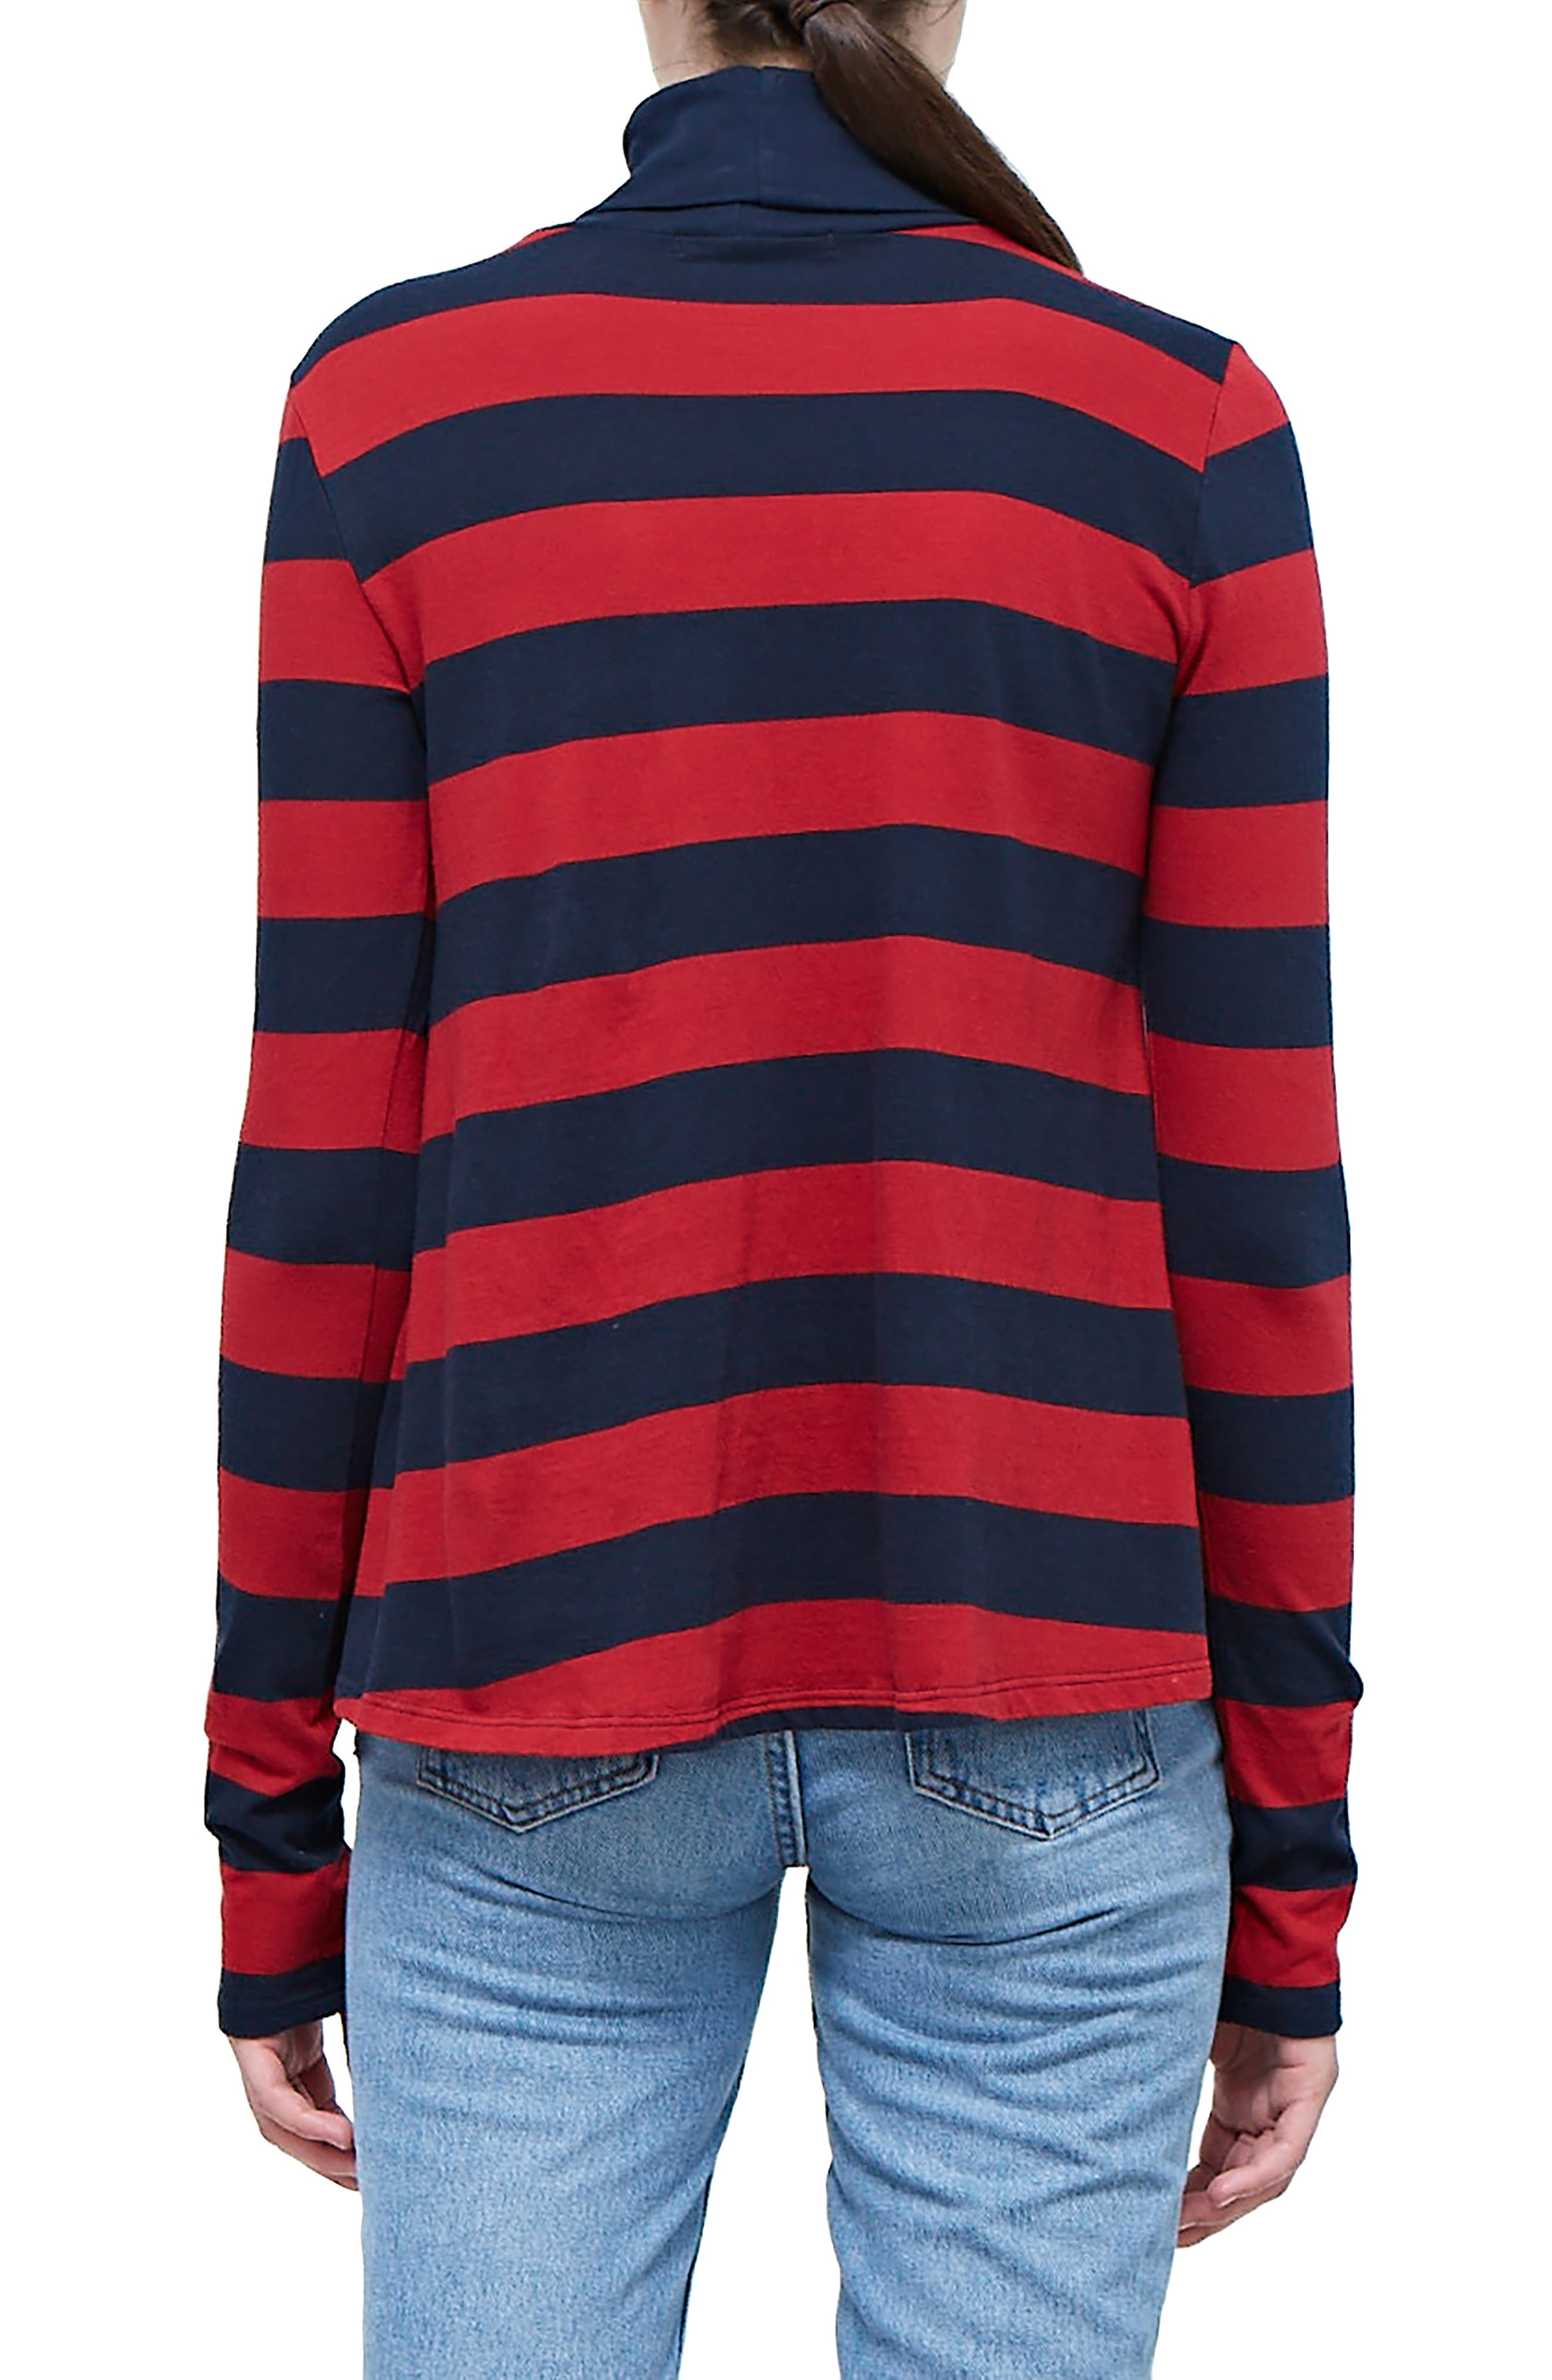 Rugby Stripe Turtleneck Top,                             Alternate thumbnail 2, color,                             NAVY/ DEEP RED